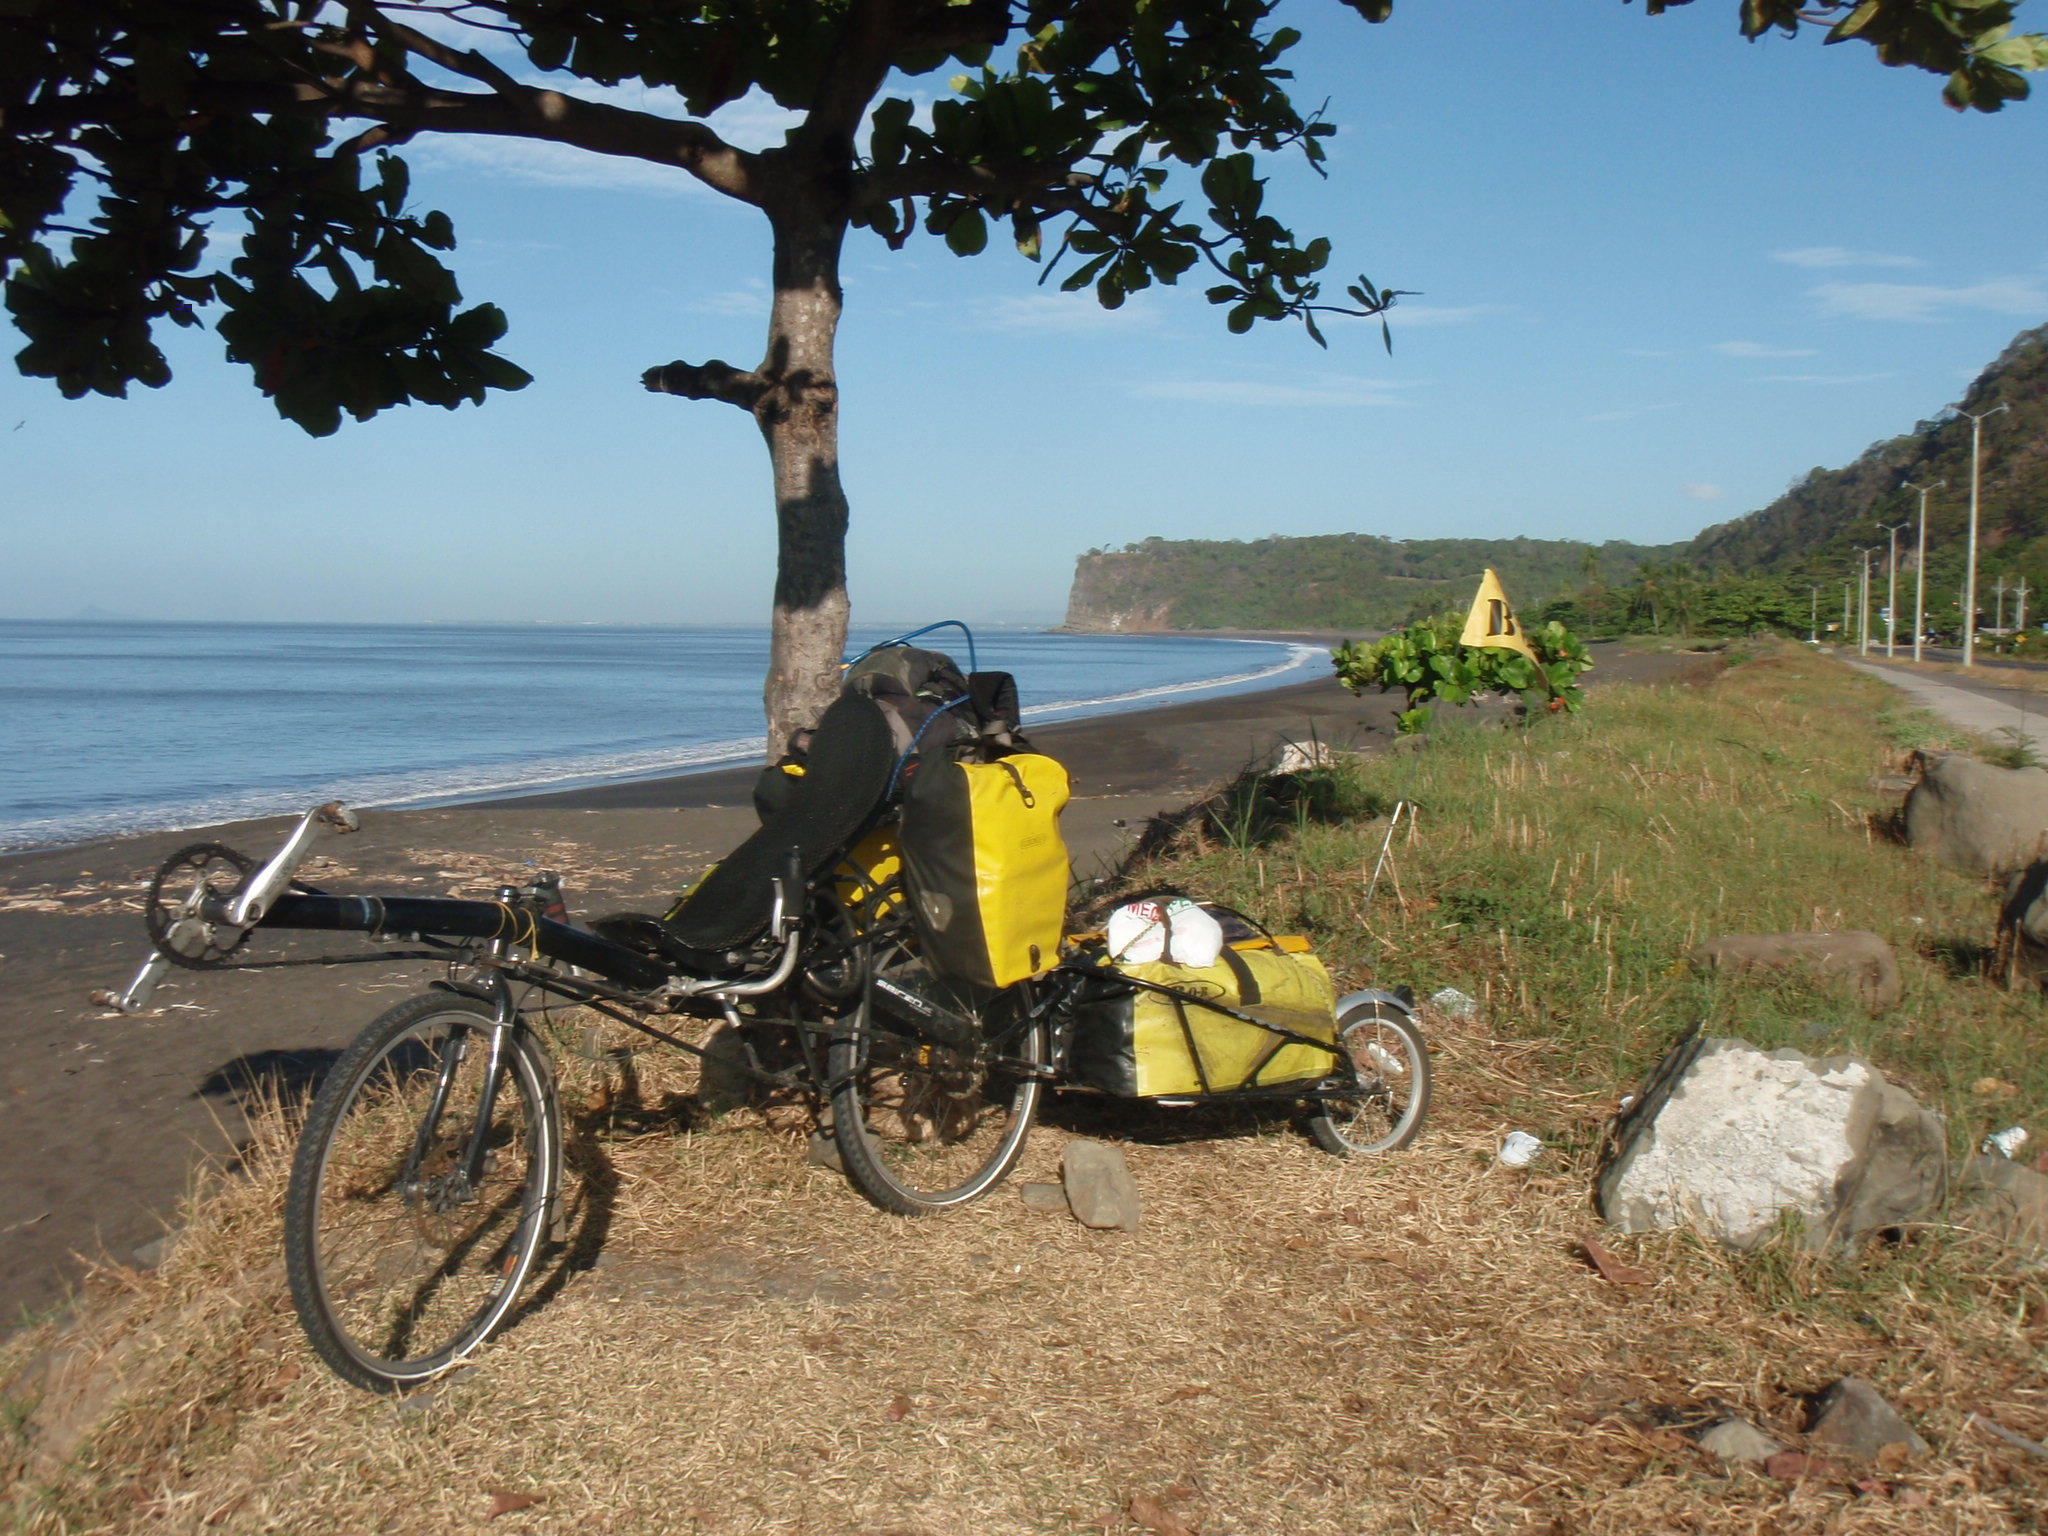 Riding along the Pacific Ocean, Bahia Caldera near Puntarenas, Costa Rica